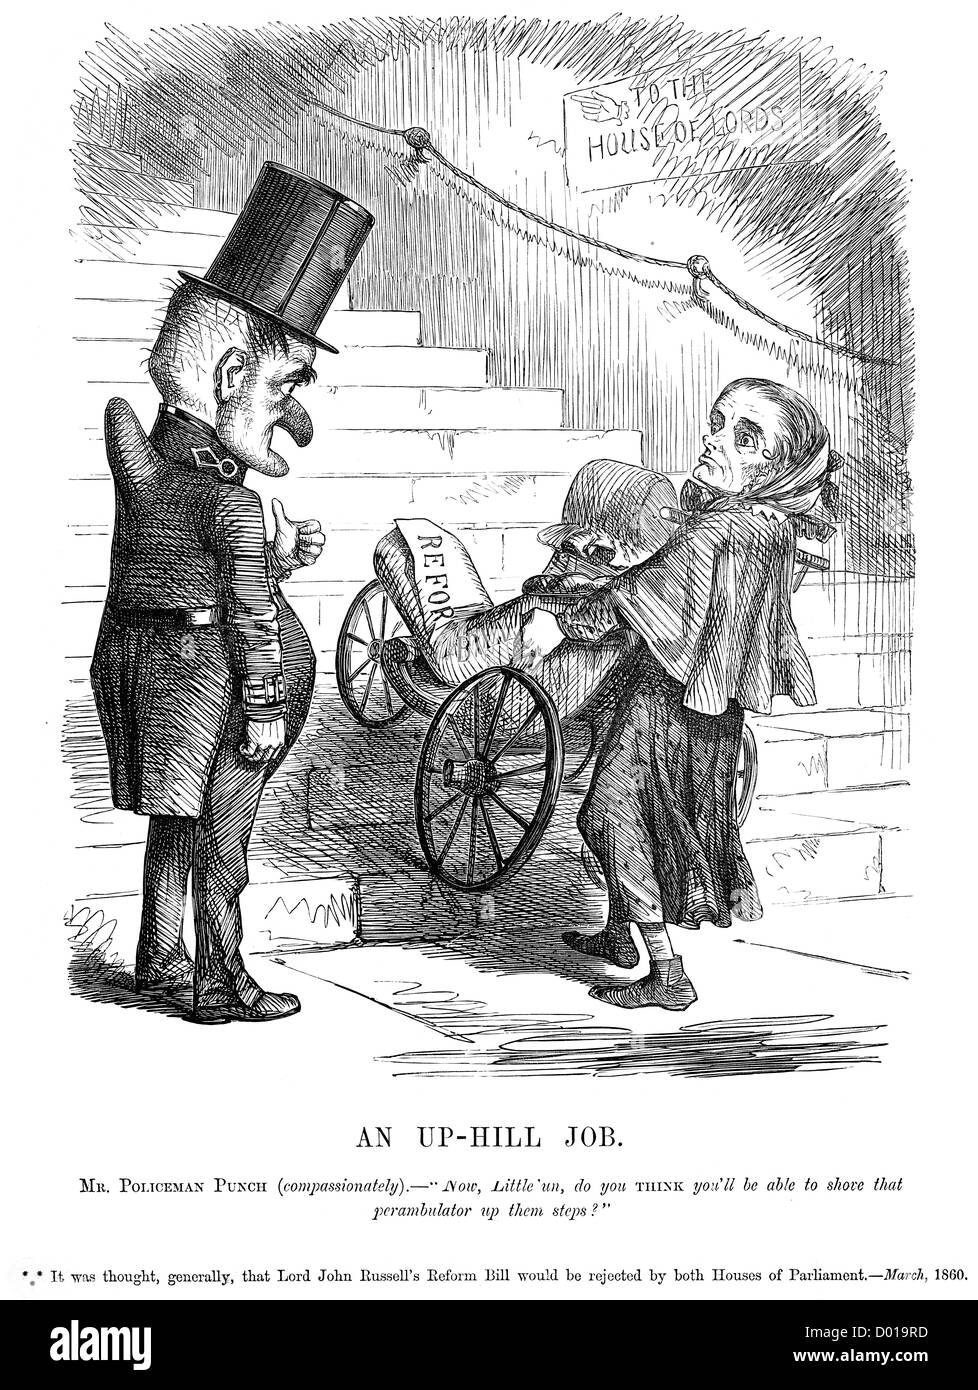 An Up Hill Job. Caricature of Lord John Russell and his Reform Bill, March 1860 - Stock Image